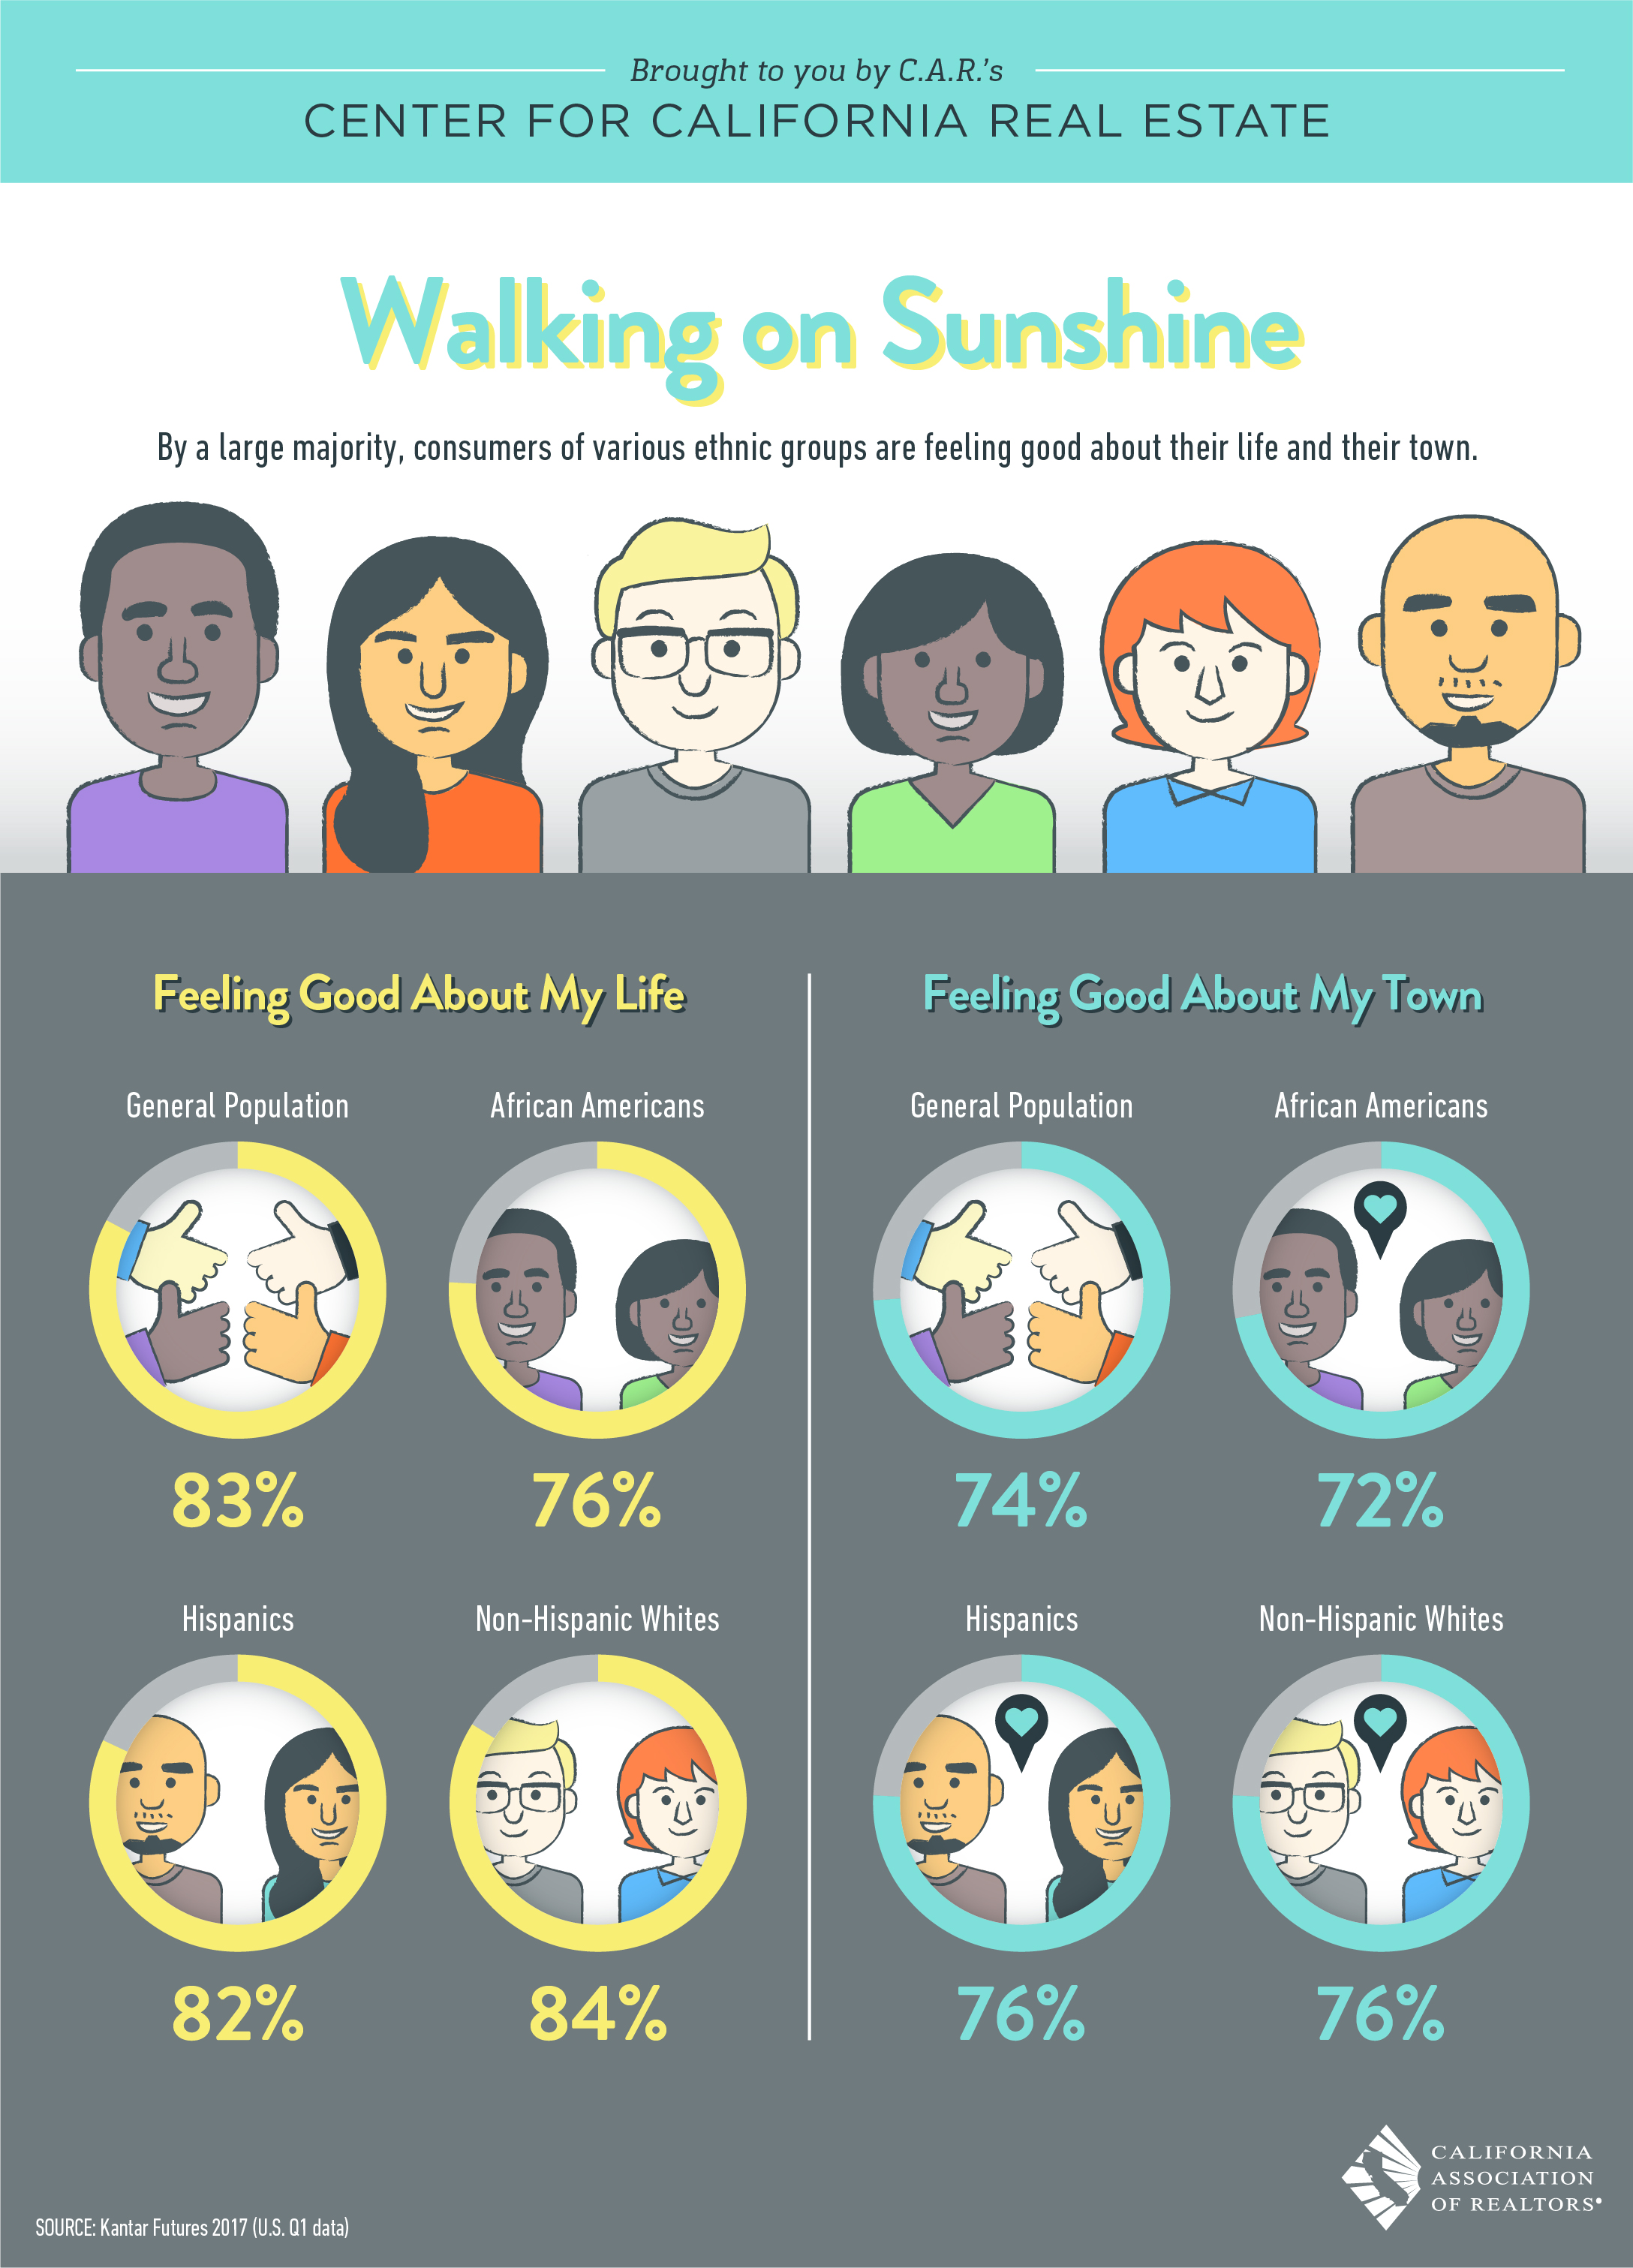 By the large majority, consumers of various ethnic groups are feeling good about their life and their town.